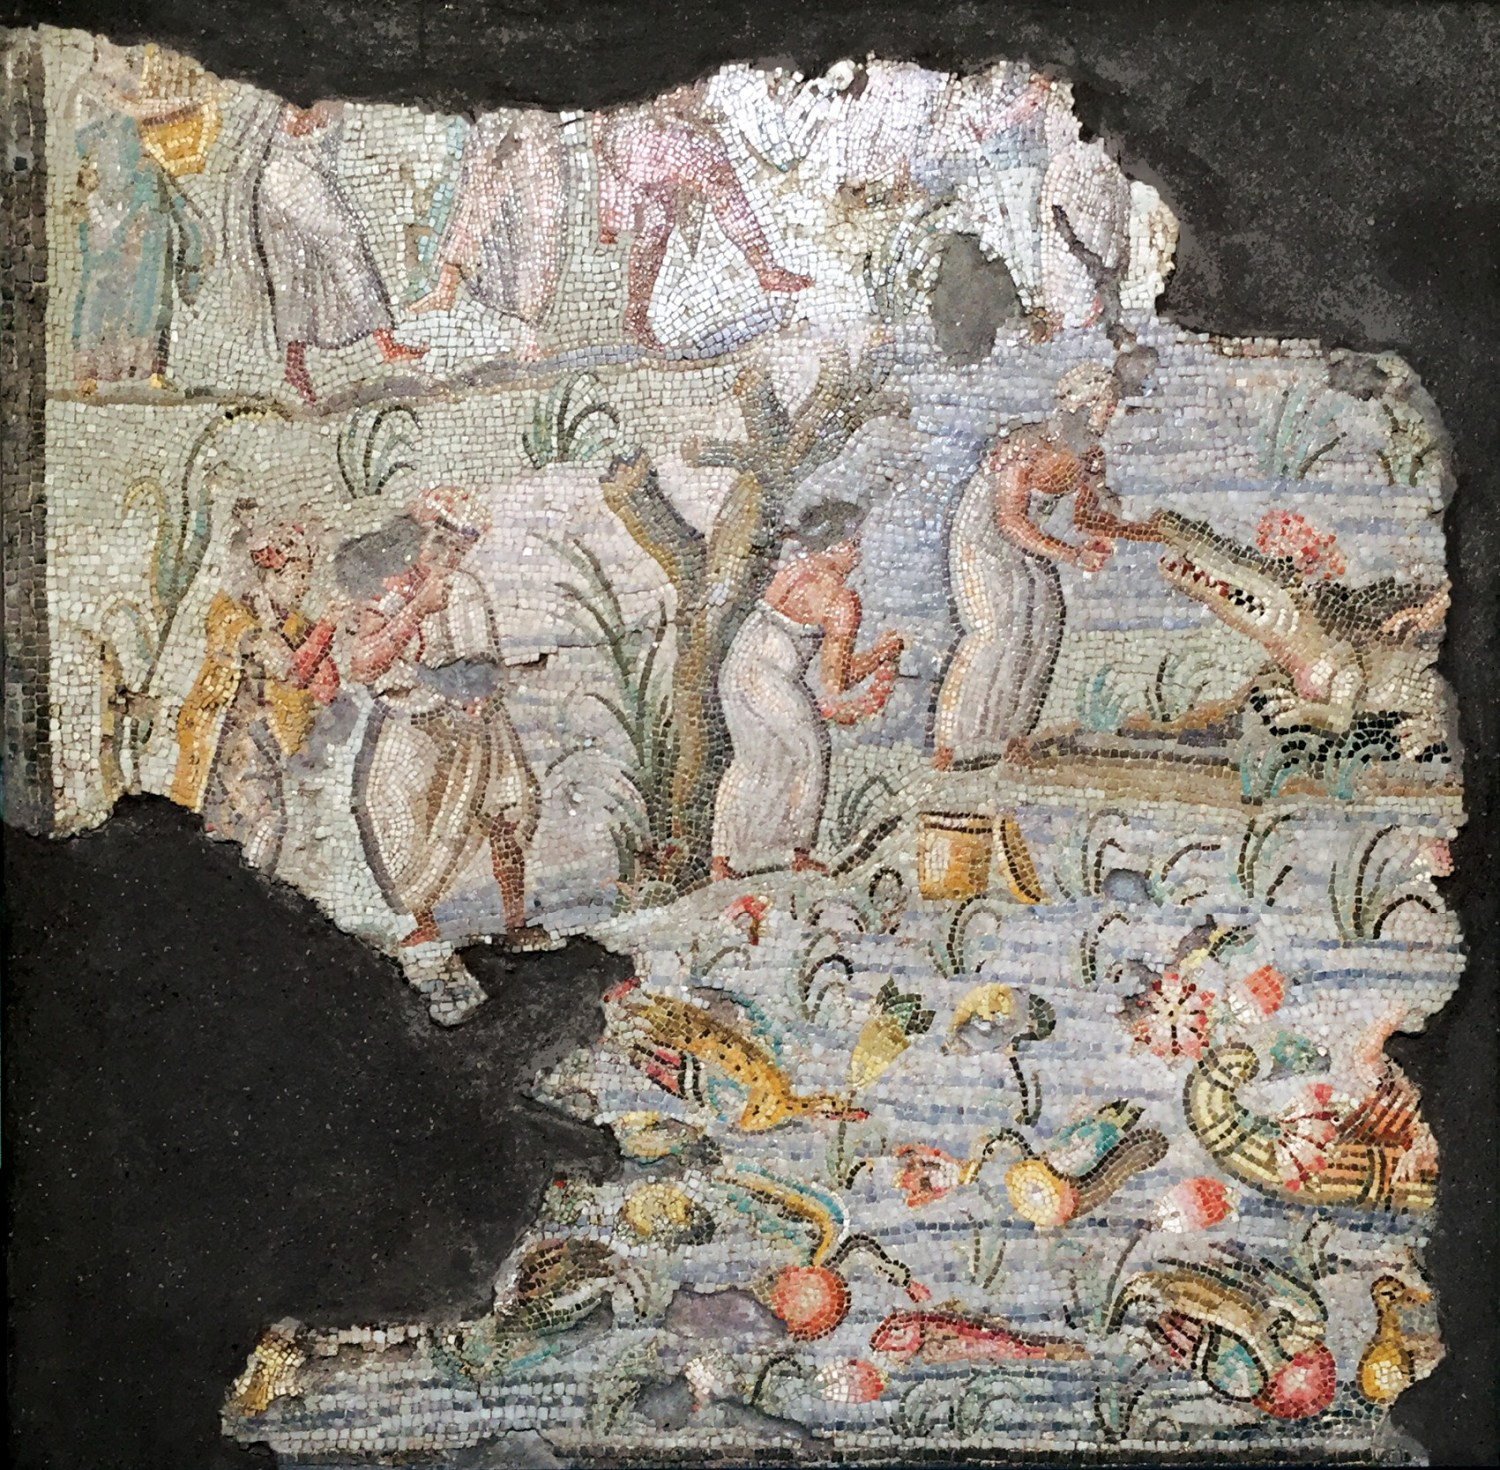 RIGHT Polychrome mosaic showing a Nilotic scene, found in 1882 in Via Nazionale. Second half of the 1st century BC.